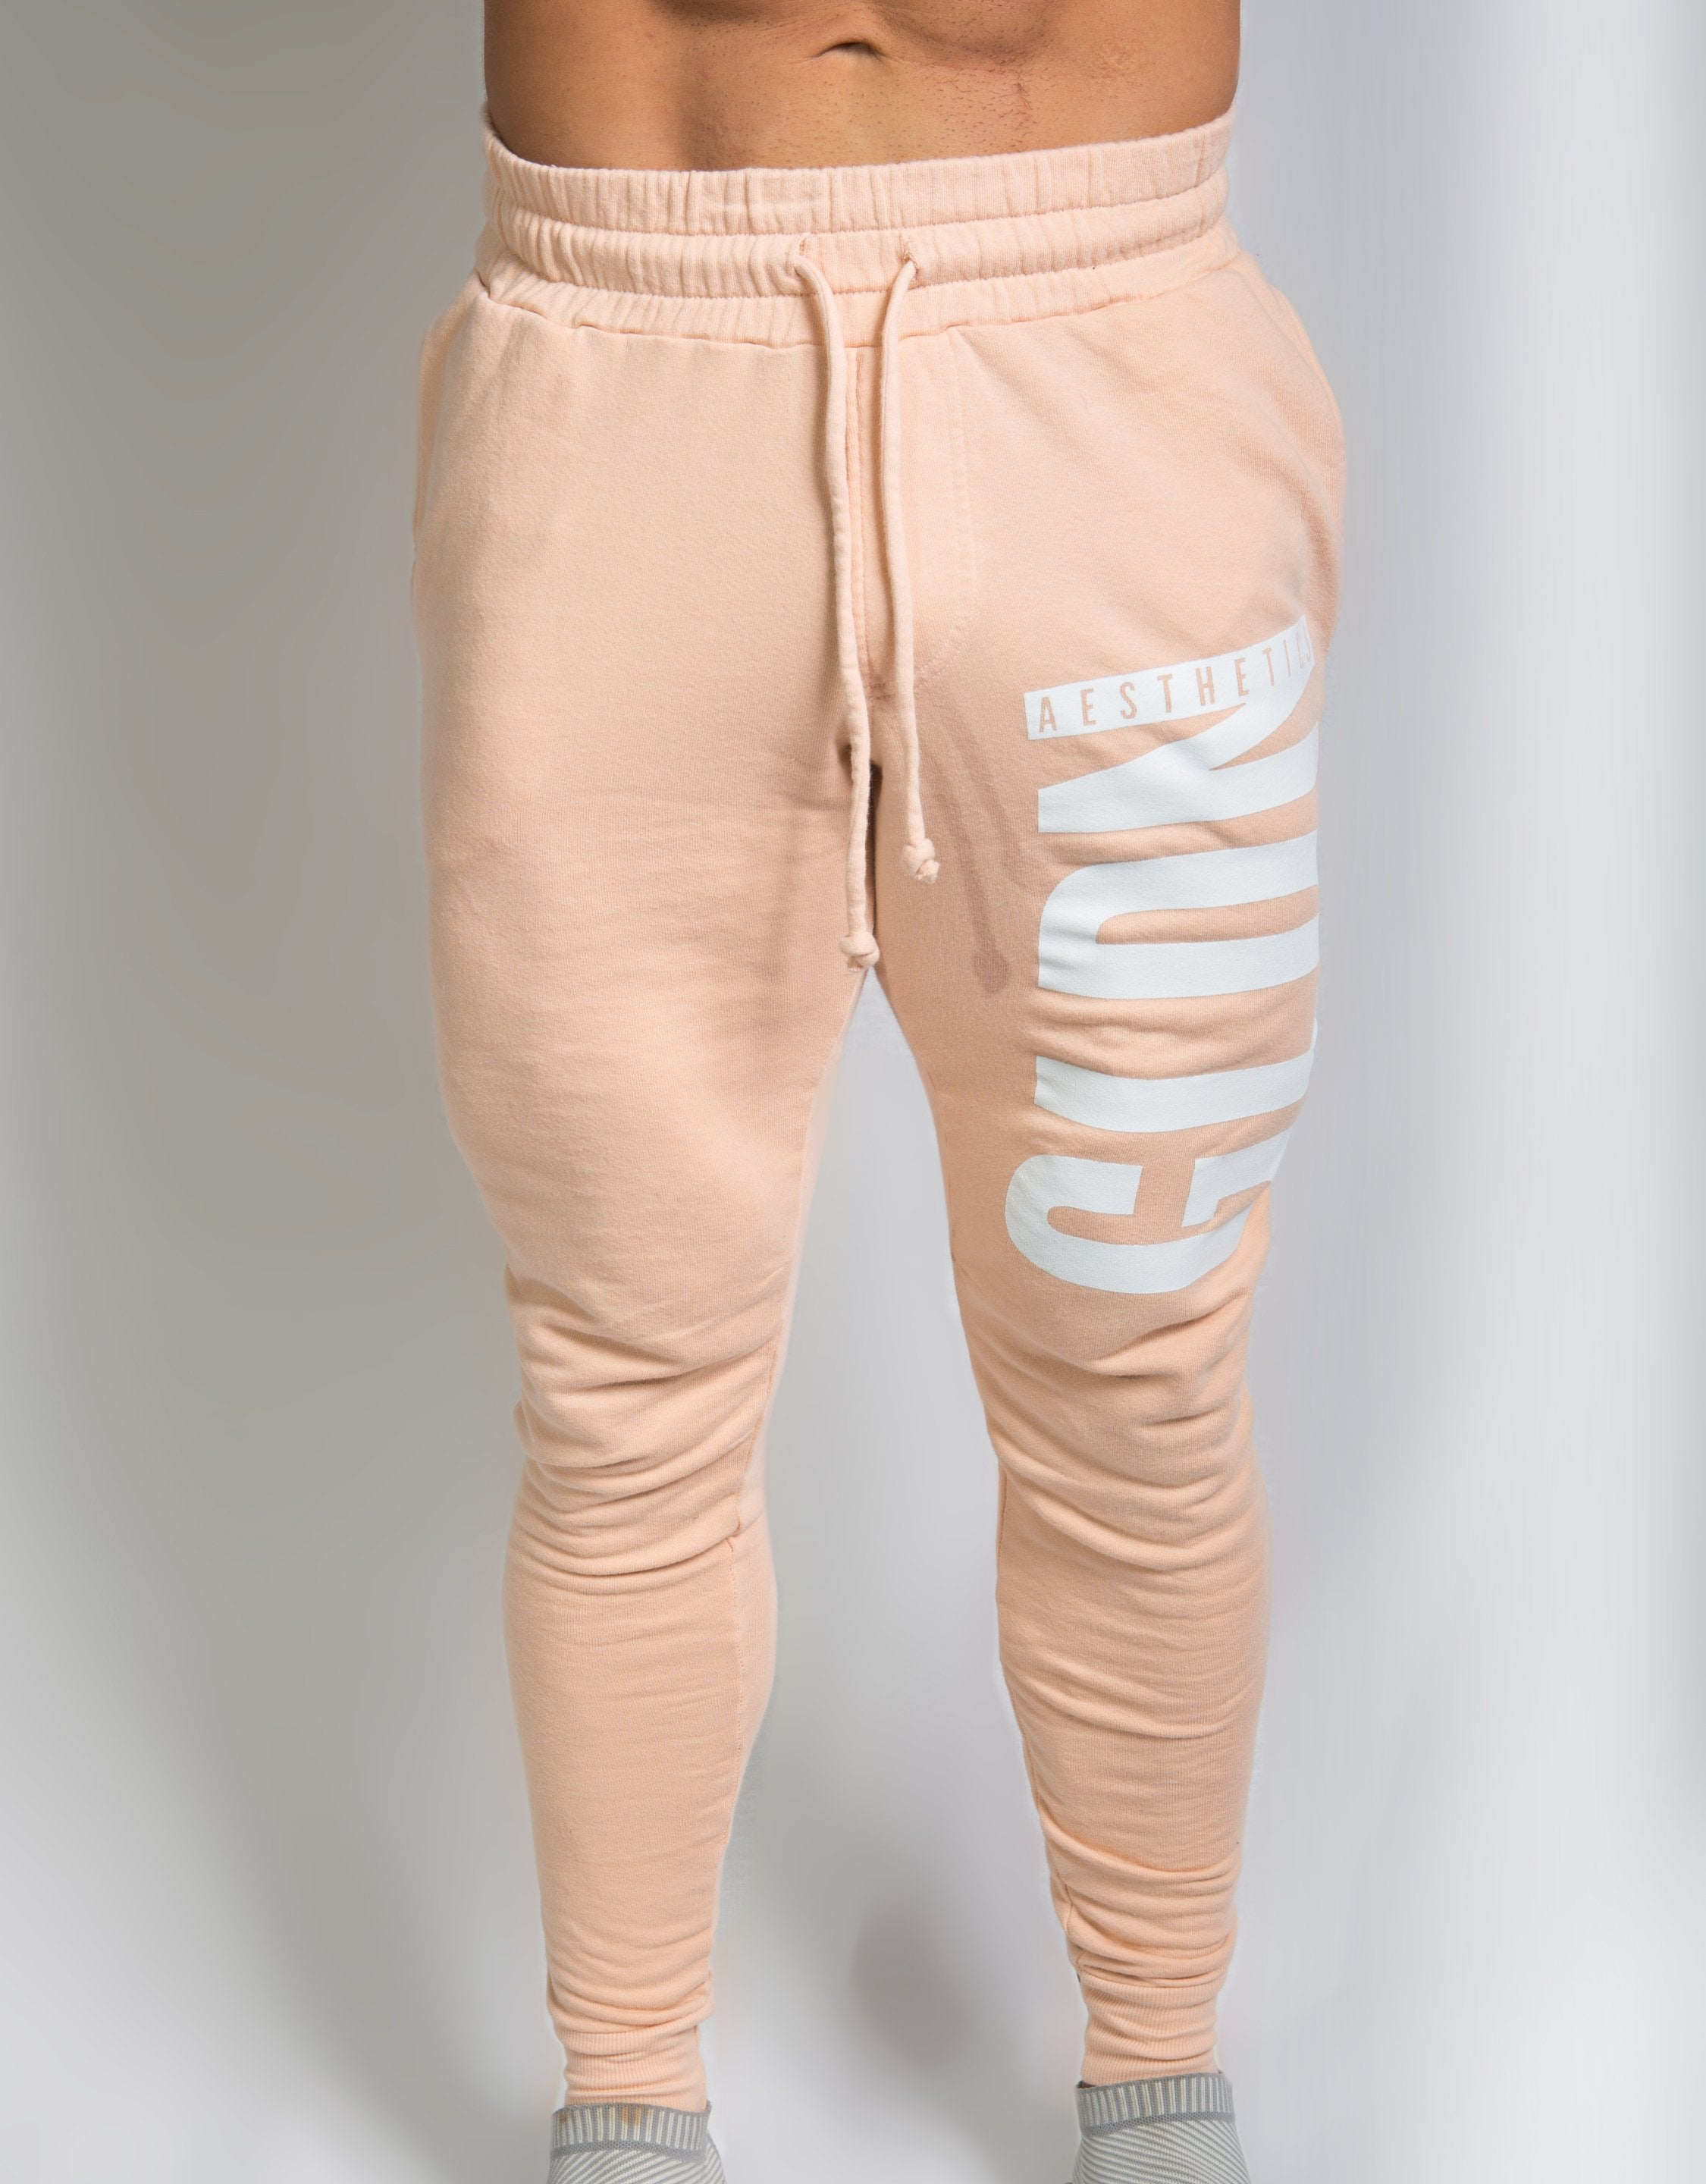 Tapered GA Joggers - Faded Peach - Golden Aesthetics